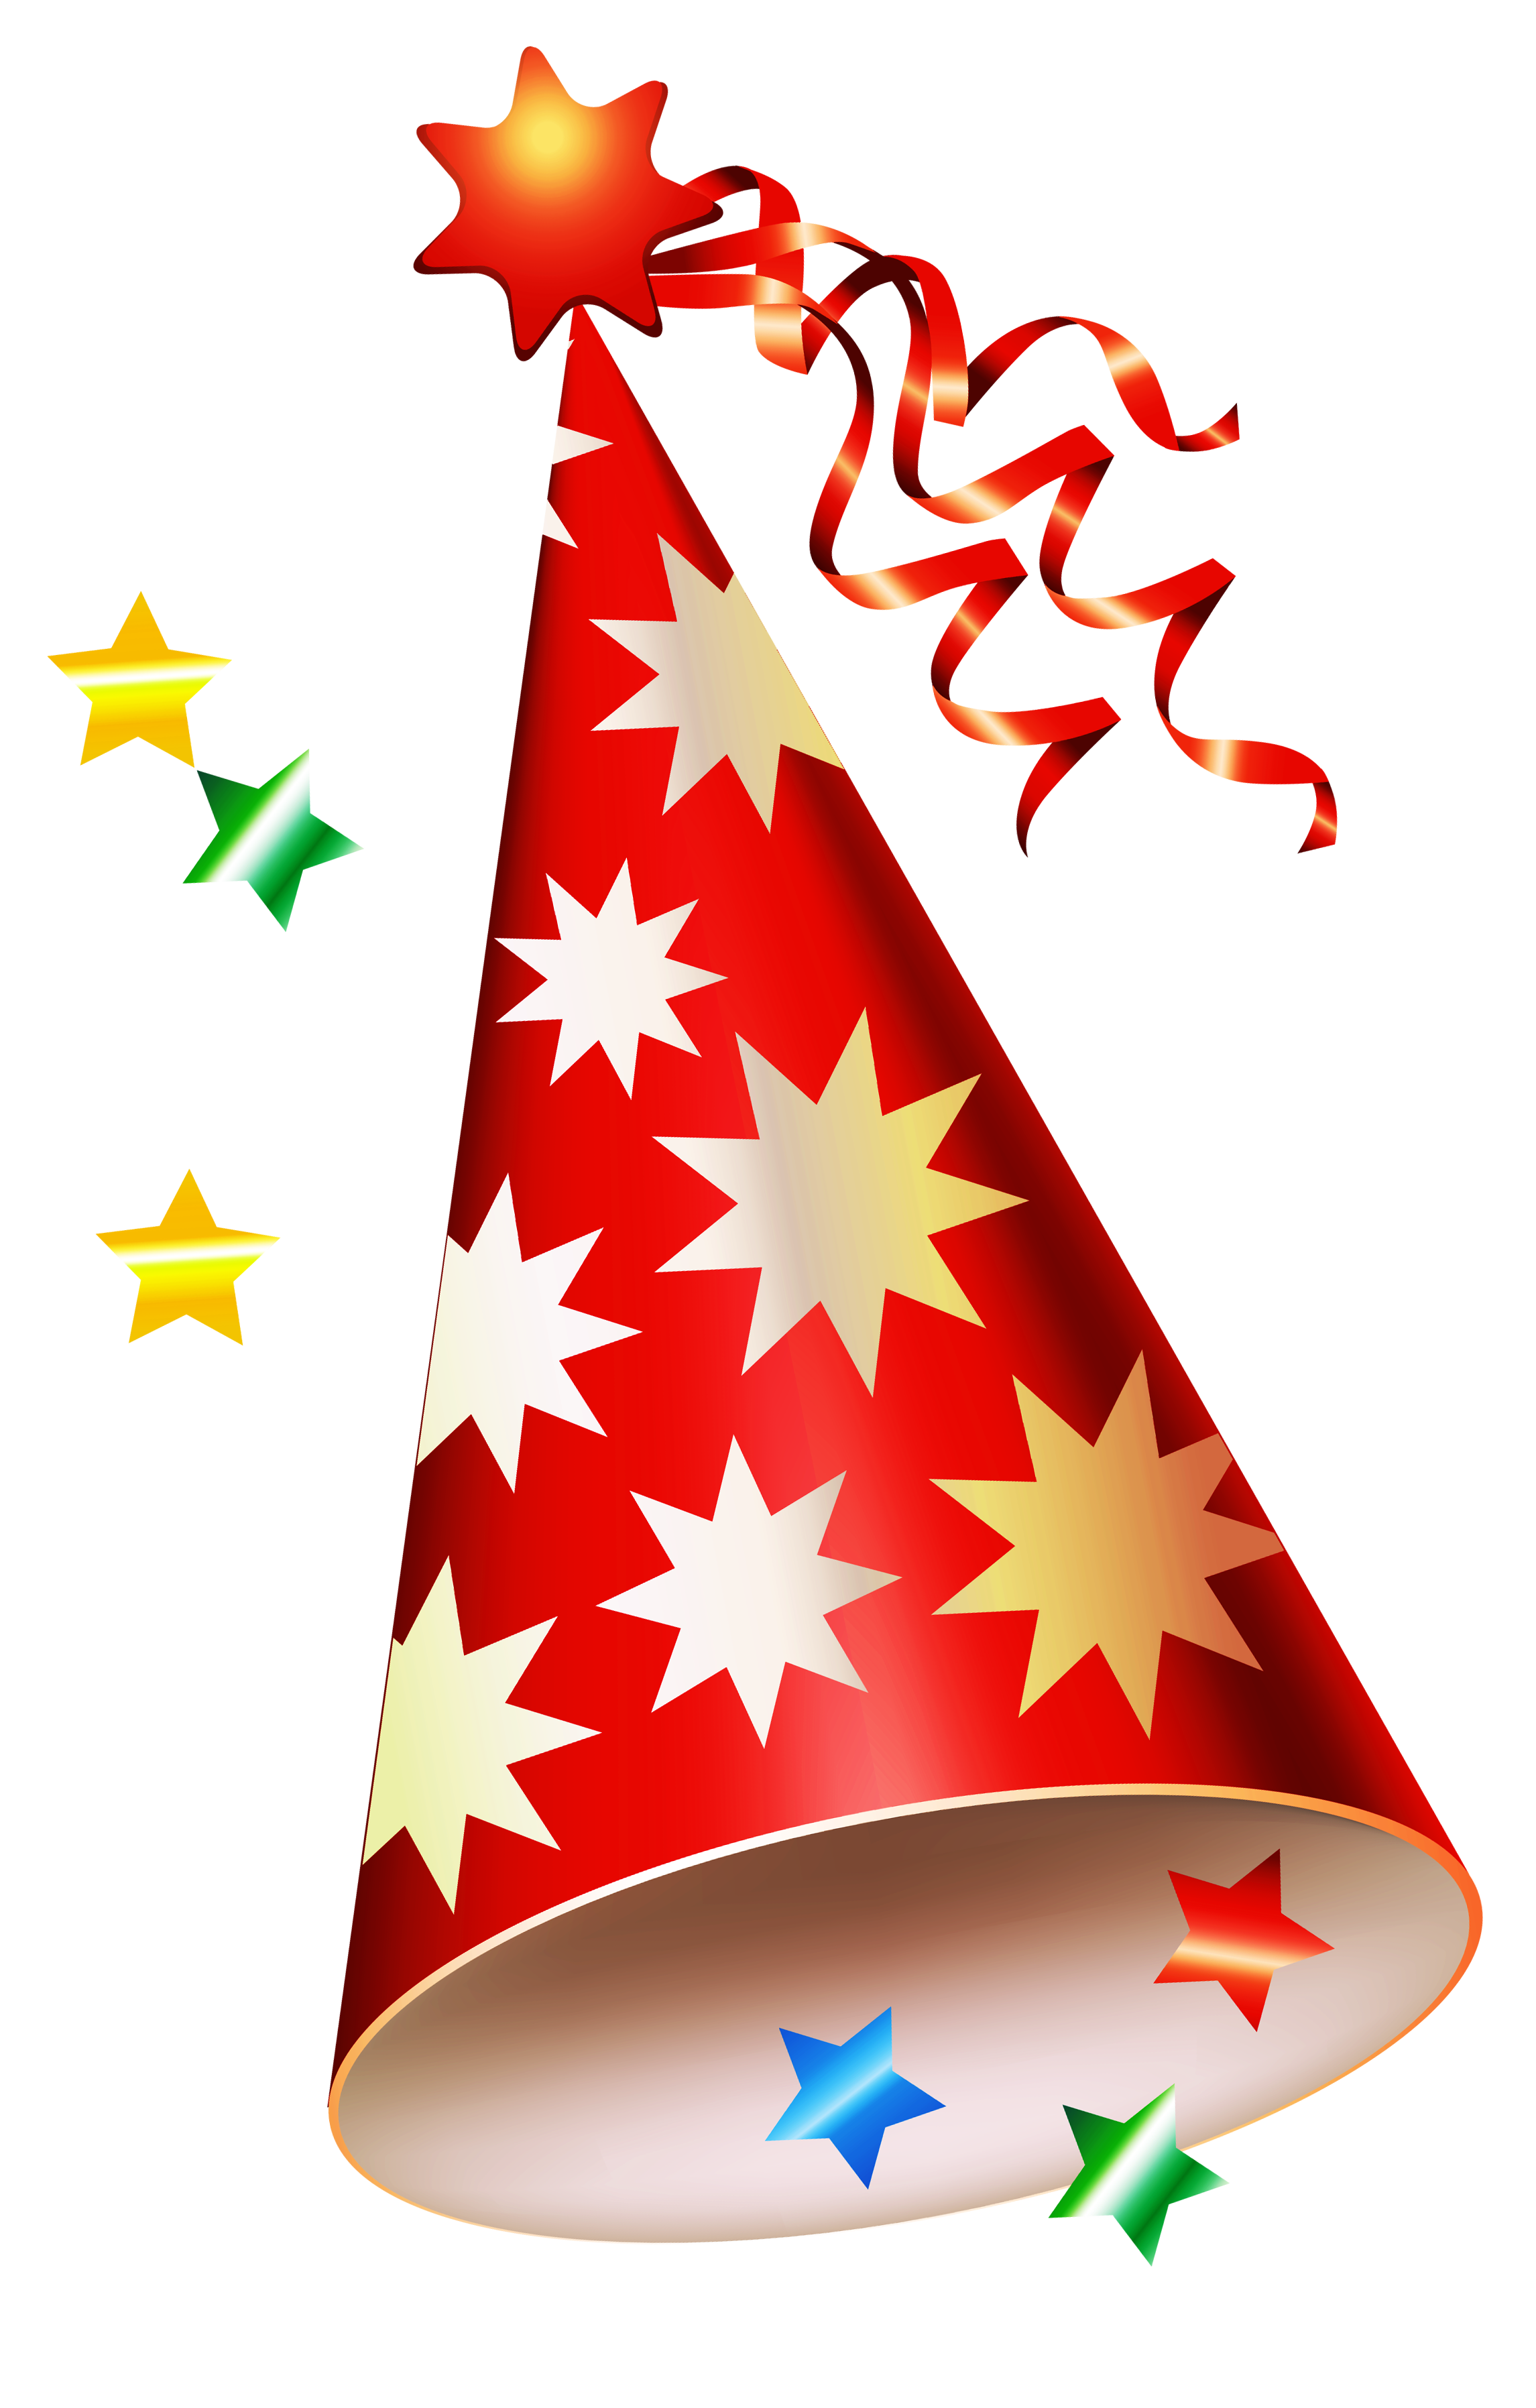 Celebrate clipart clear background. Red party hat transparent